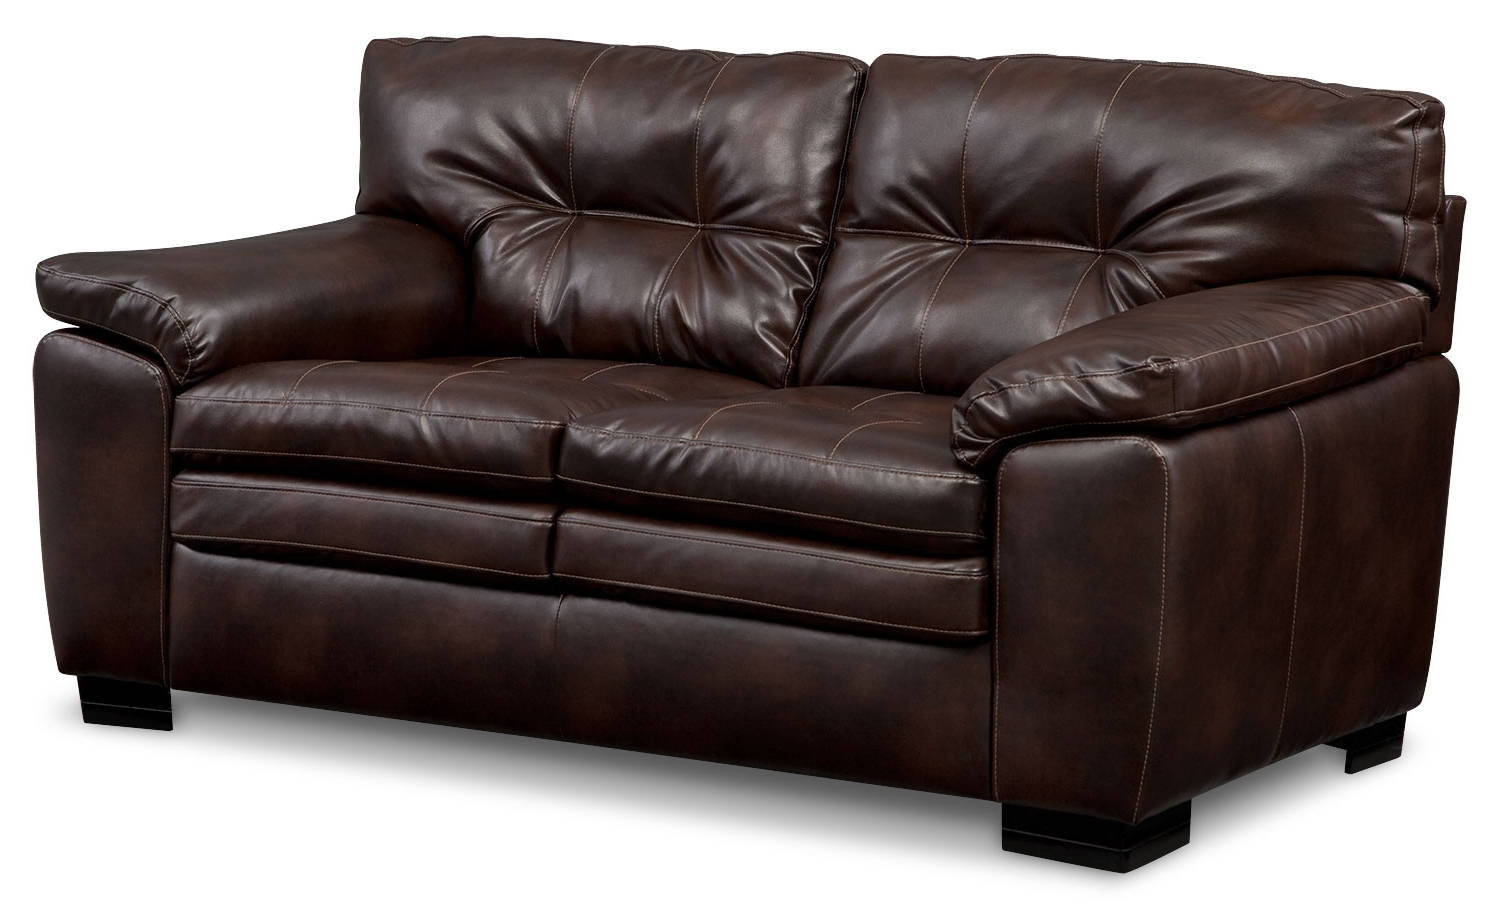 Sectional Sofas Under 500 In Latest Sofa : Beige Sofa Set Beige Fabric Classic Living Room Sofa (View 8 of 15)